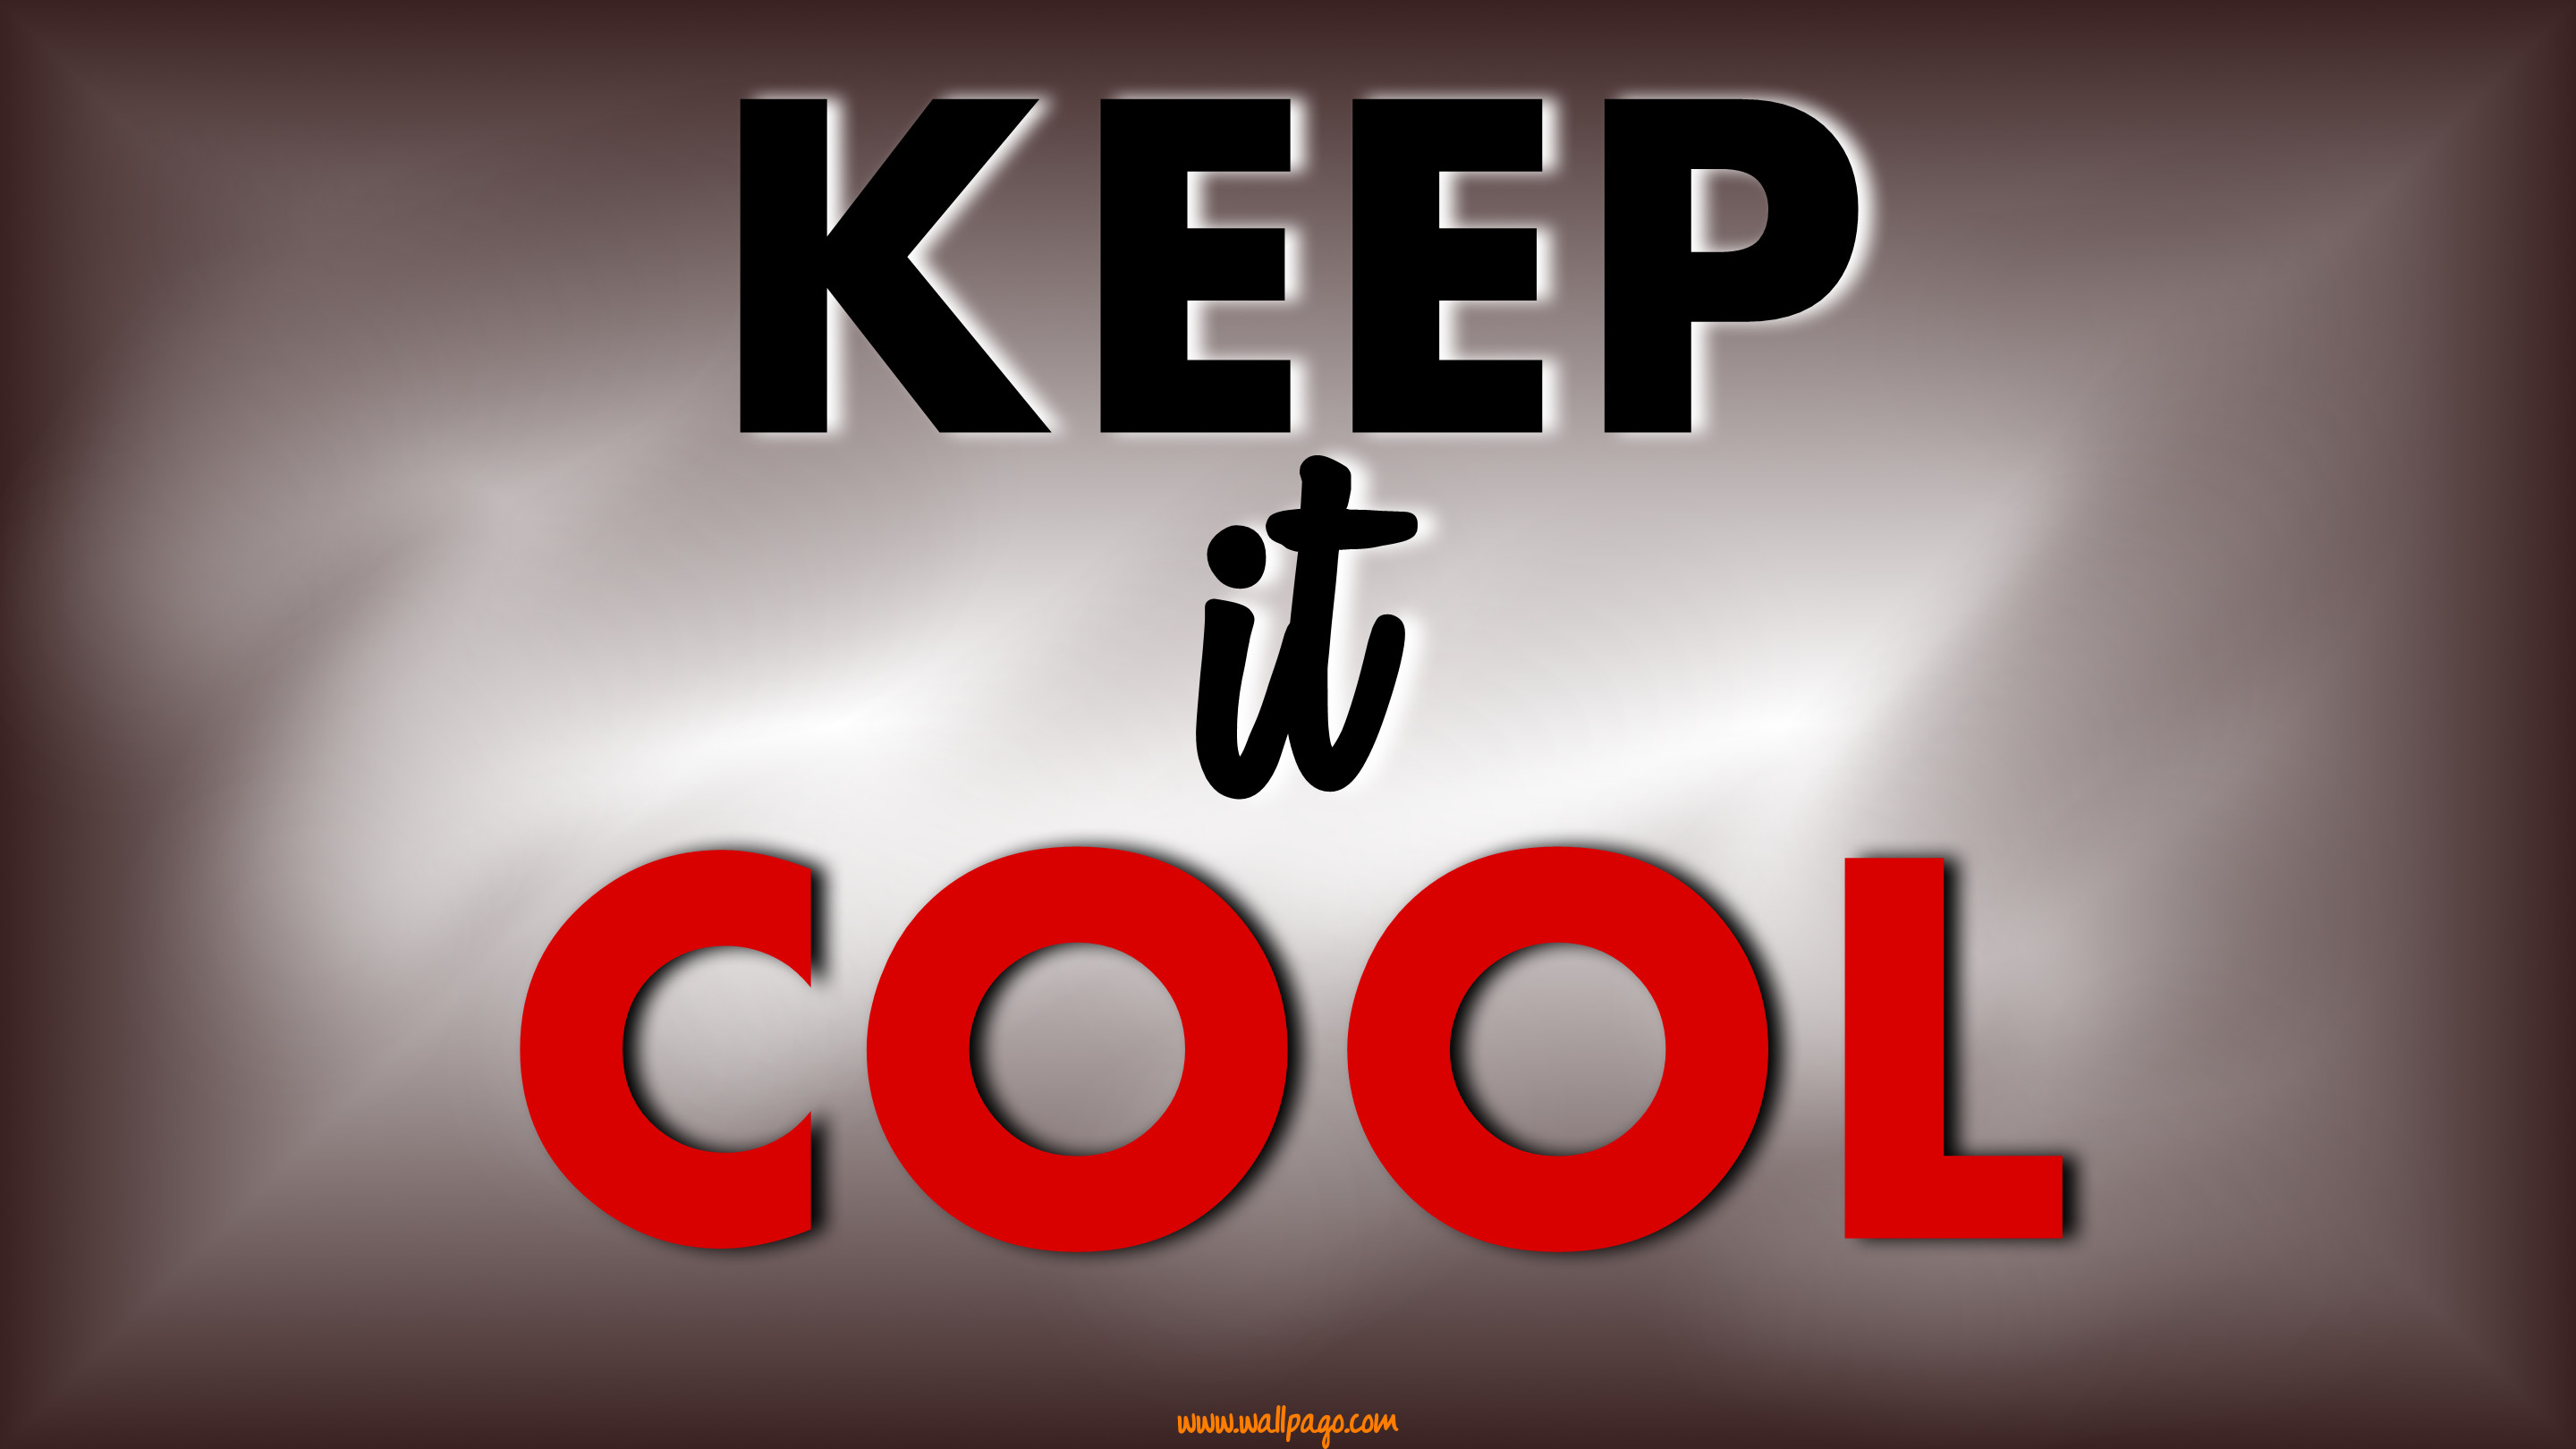 2880x1620 Keep it cool quote wallpapers. Keep it cool inspirational words. Unknown